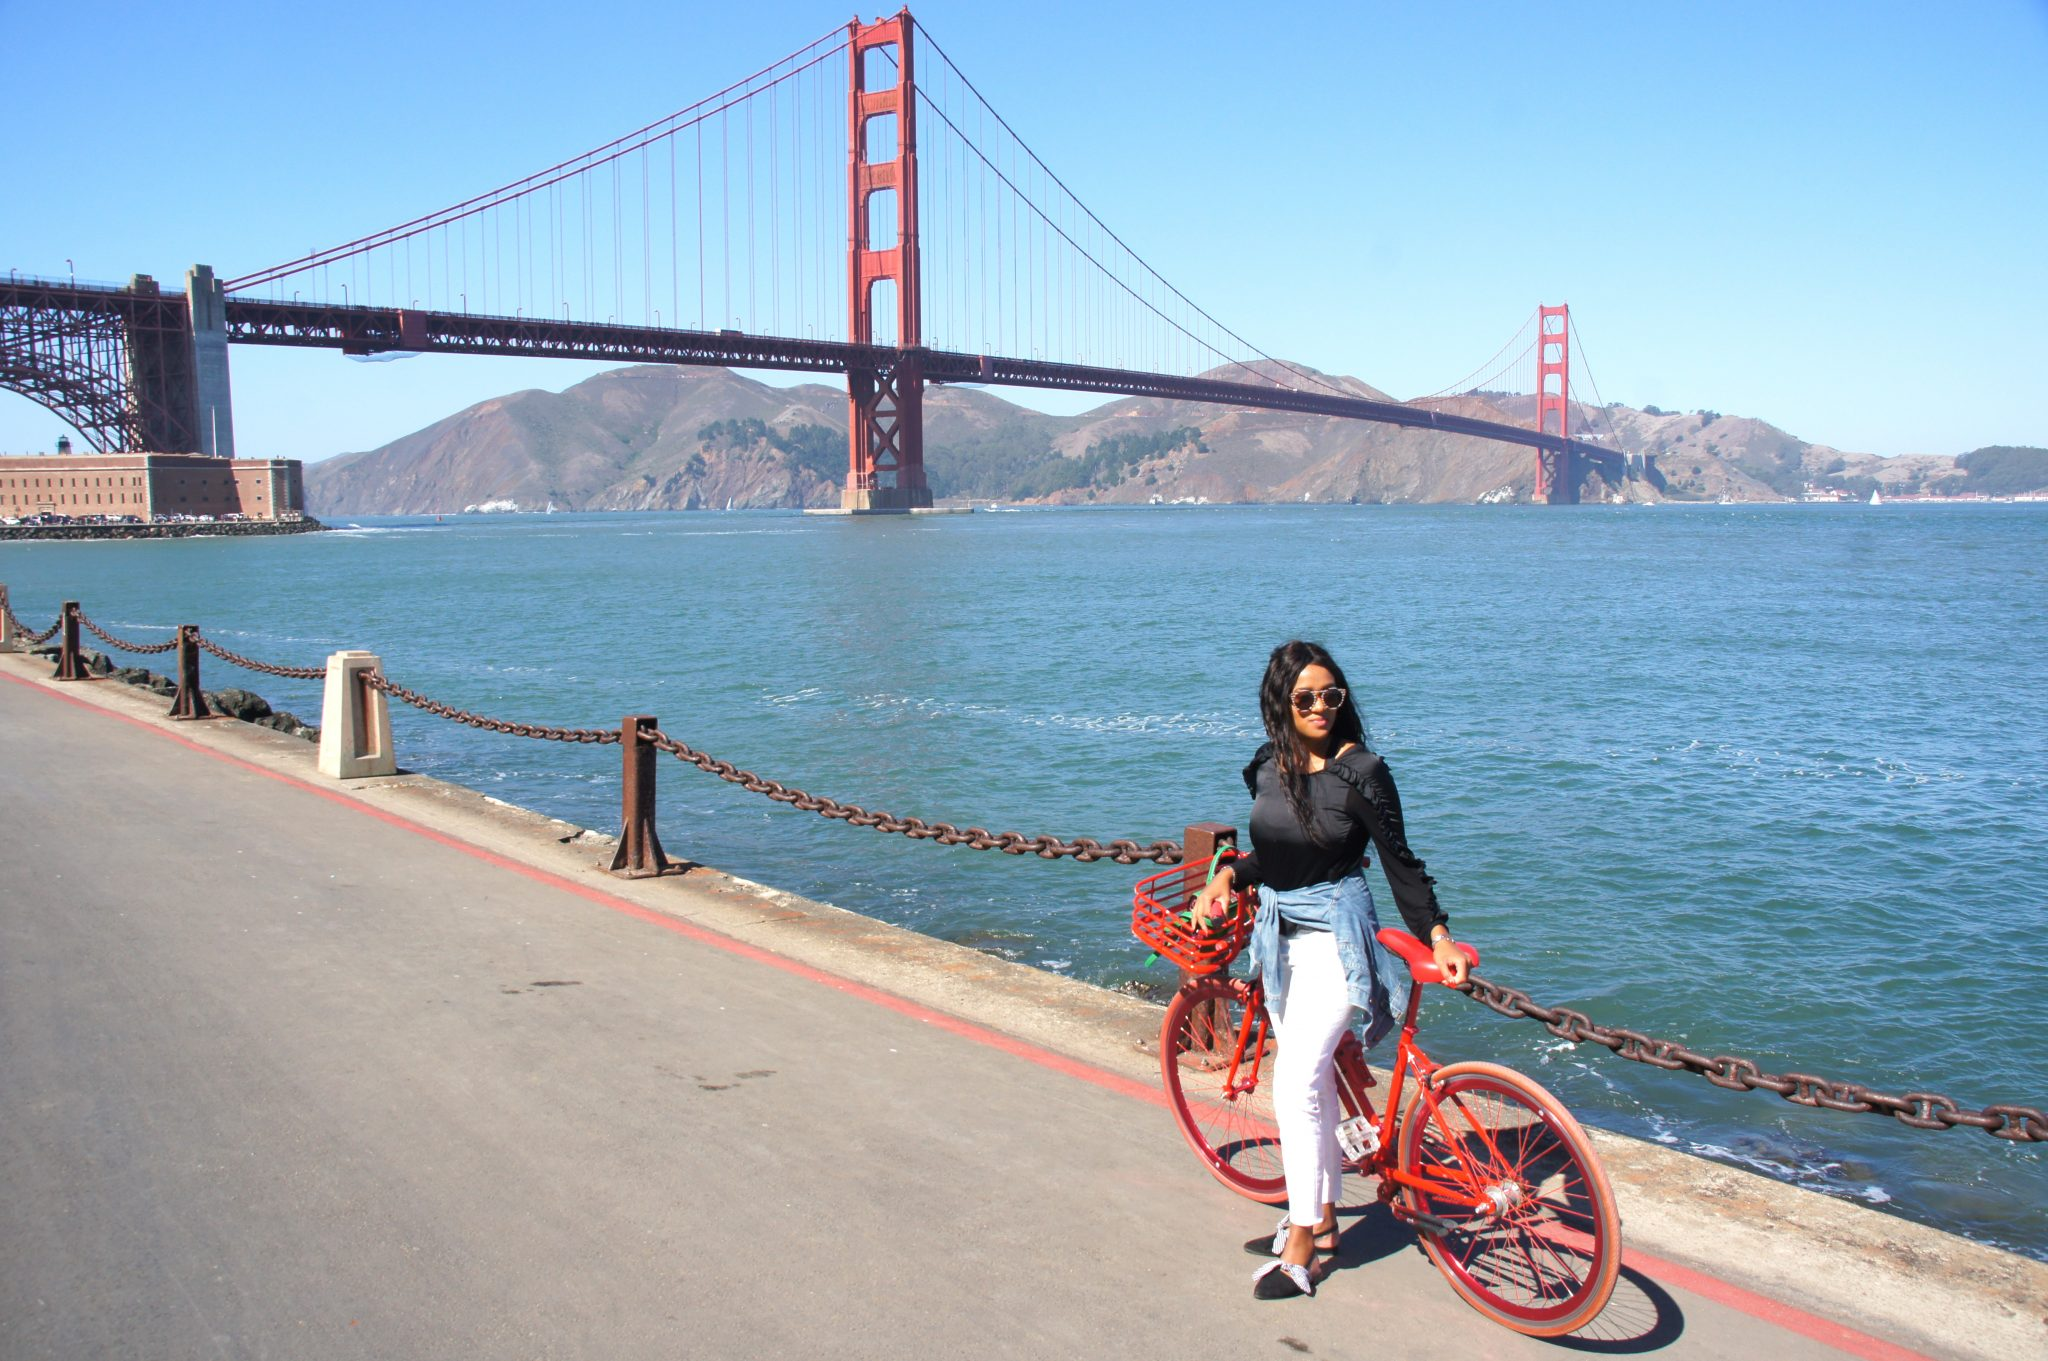 Me with bike at the Golden Gate Bridge in San Francisco